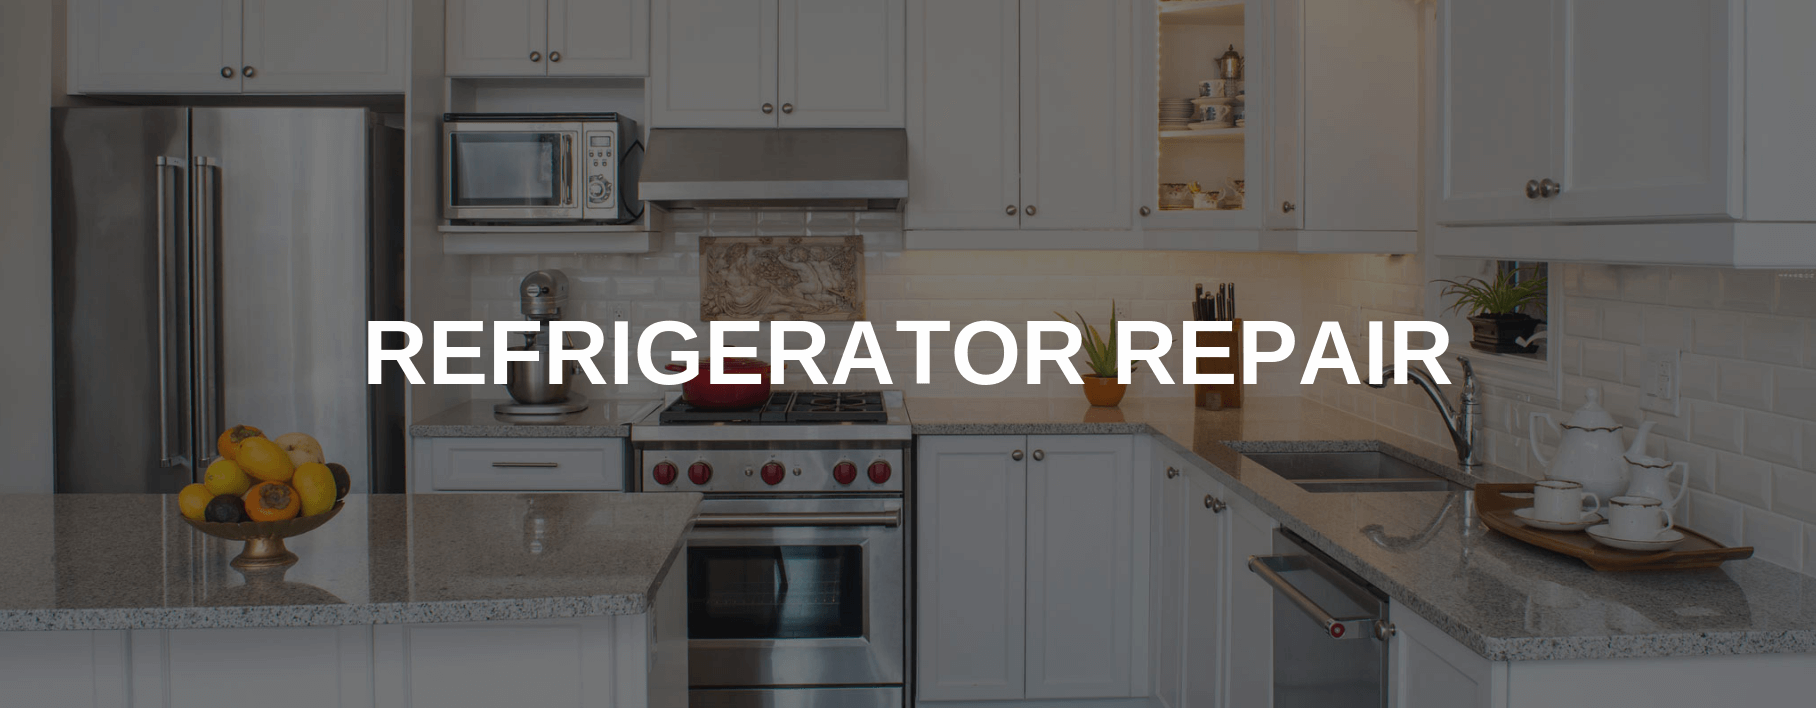 middletown refrigerator repair